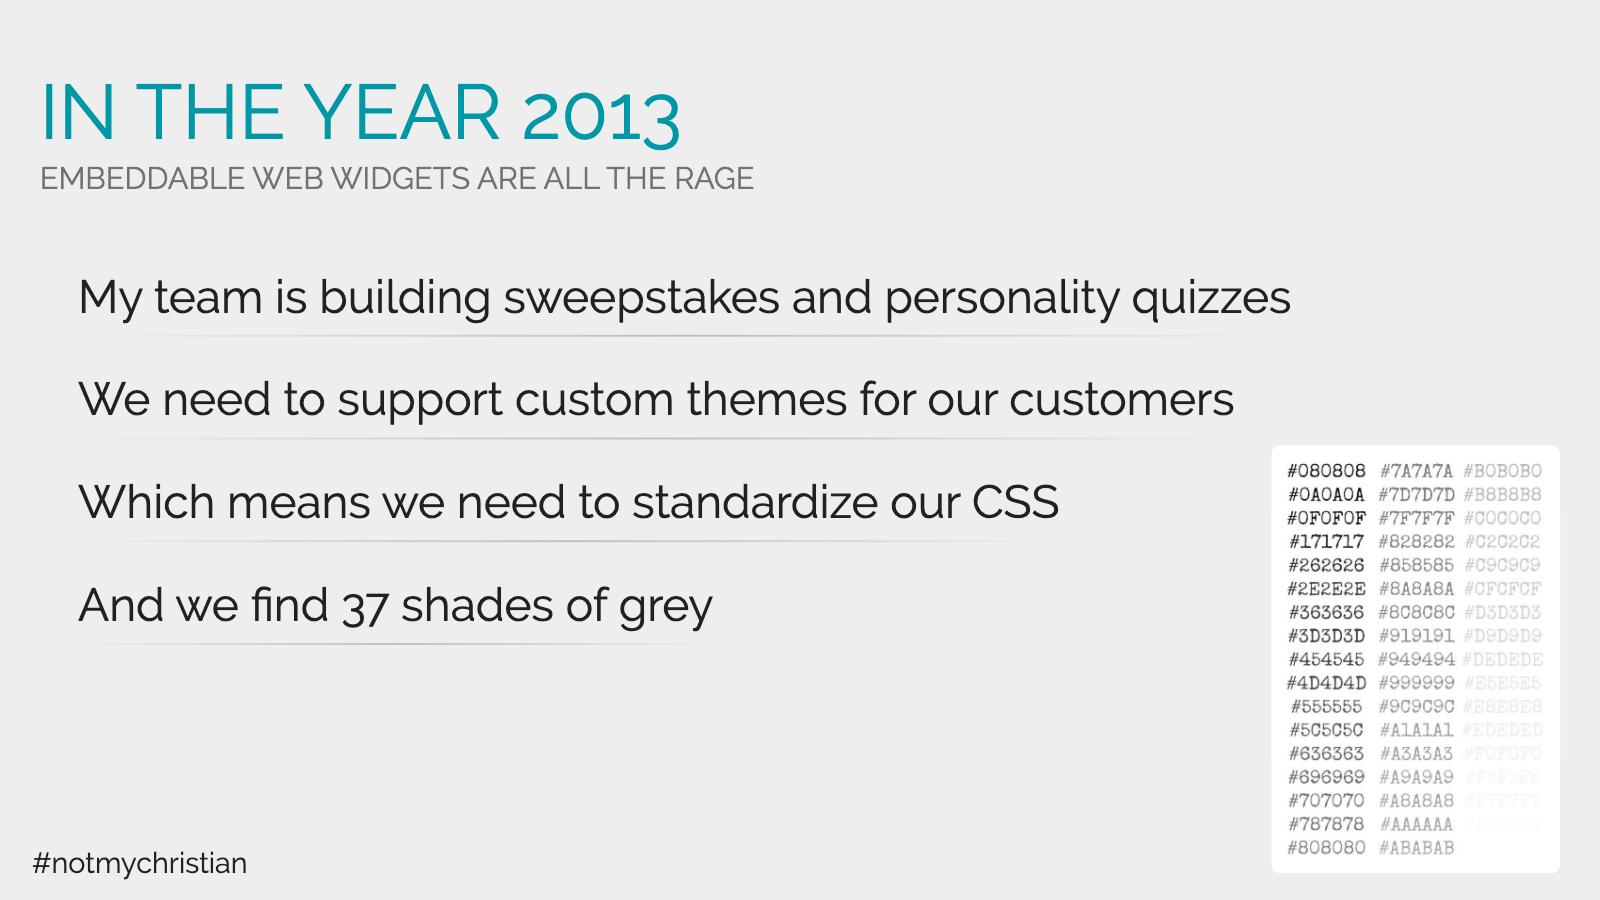 Slide content, In the year 2013, my team found 37 shades of grey during a CSS audit